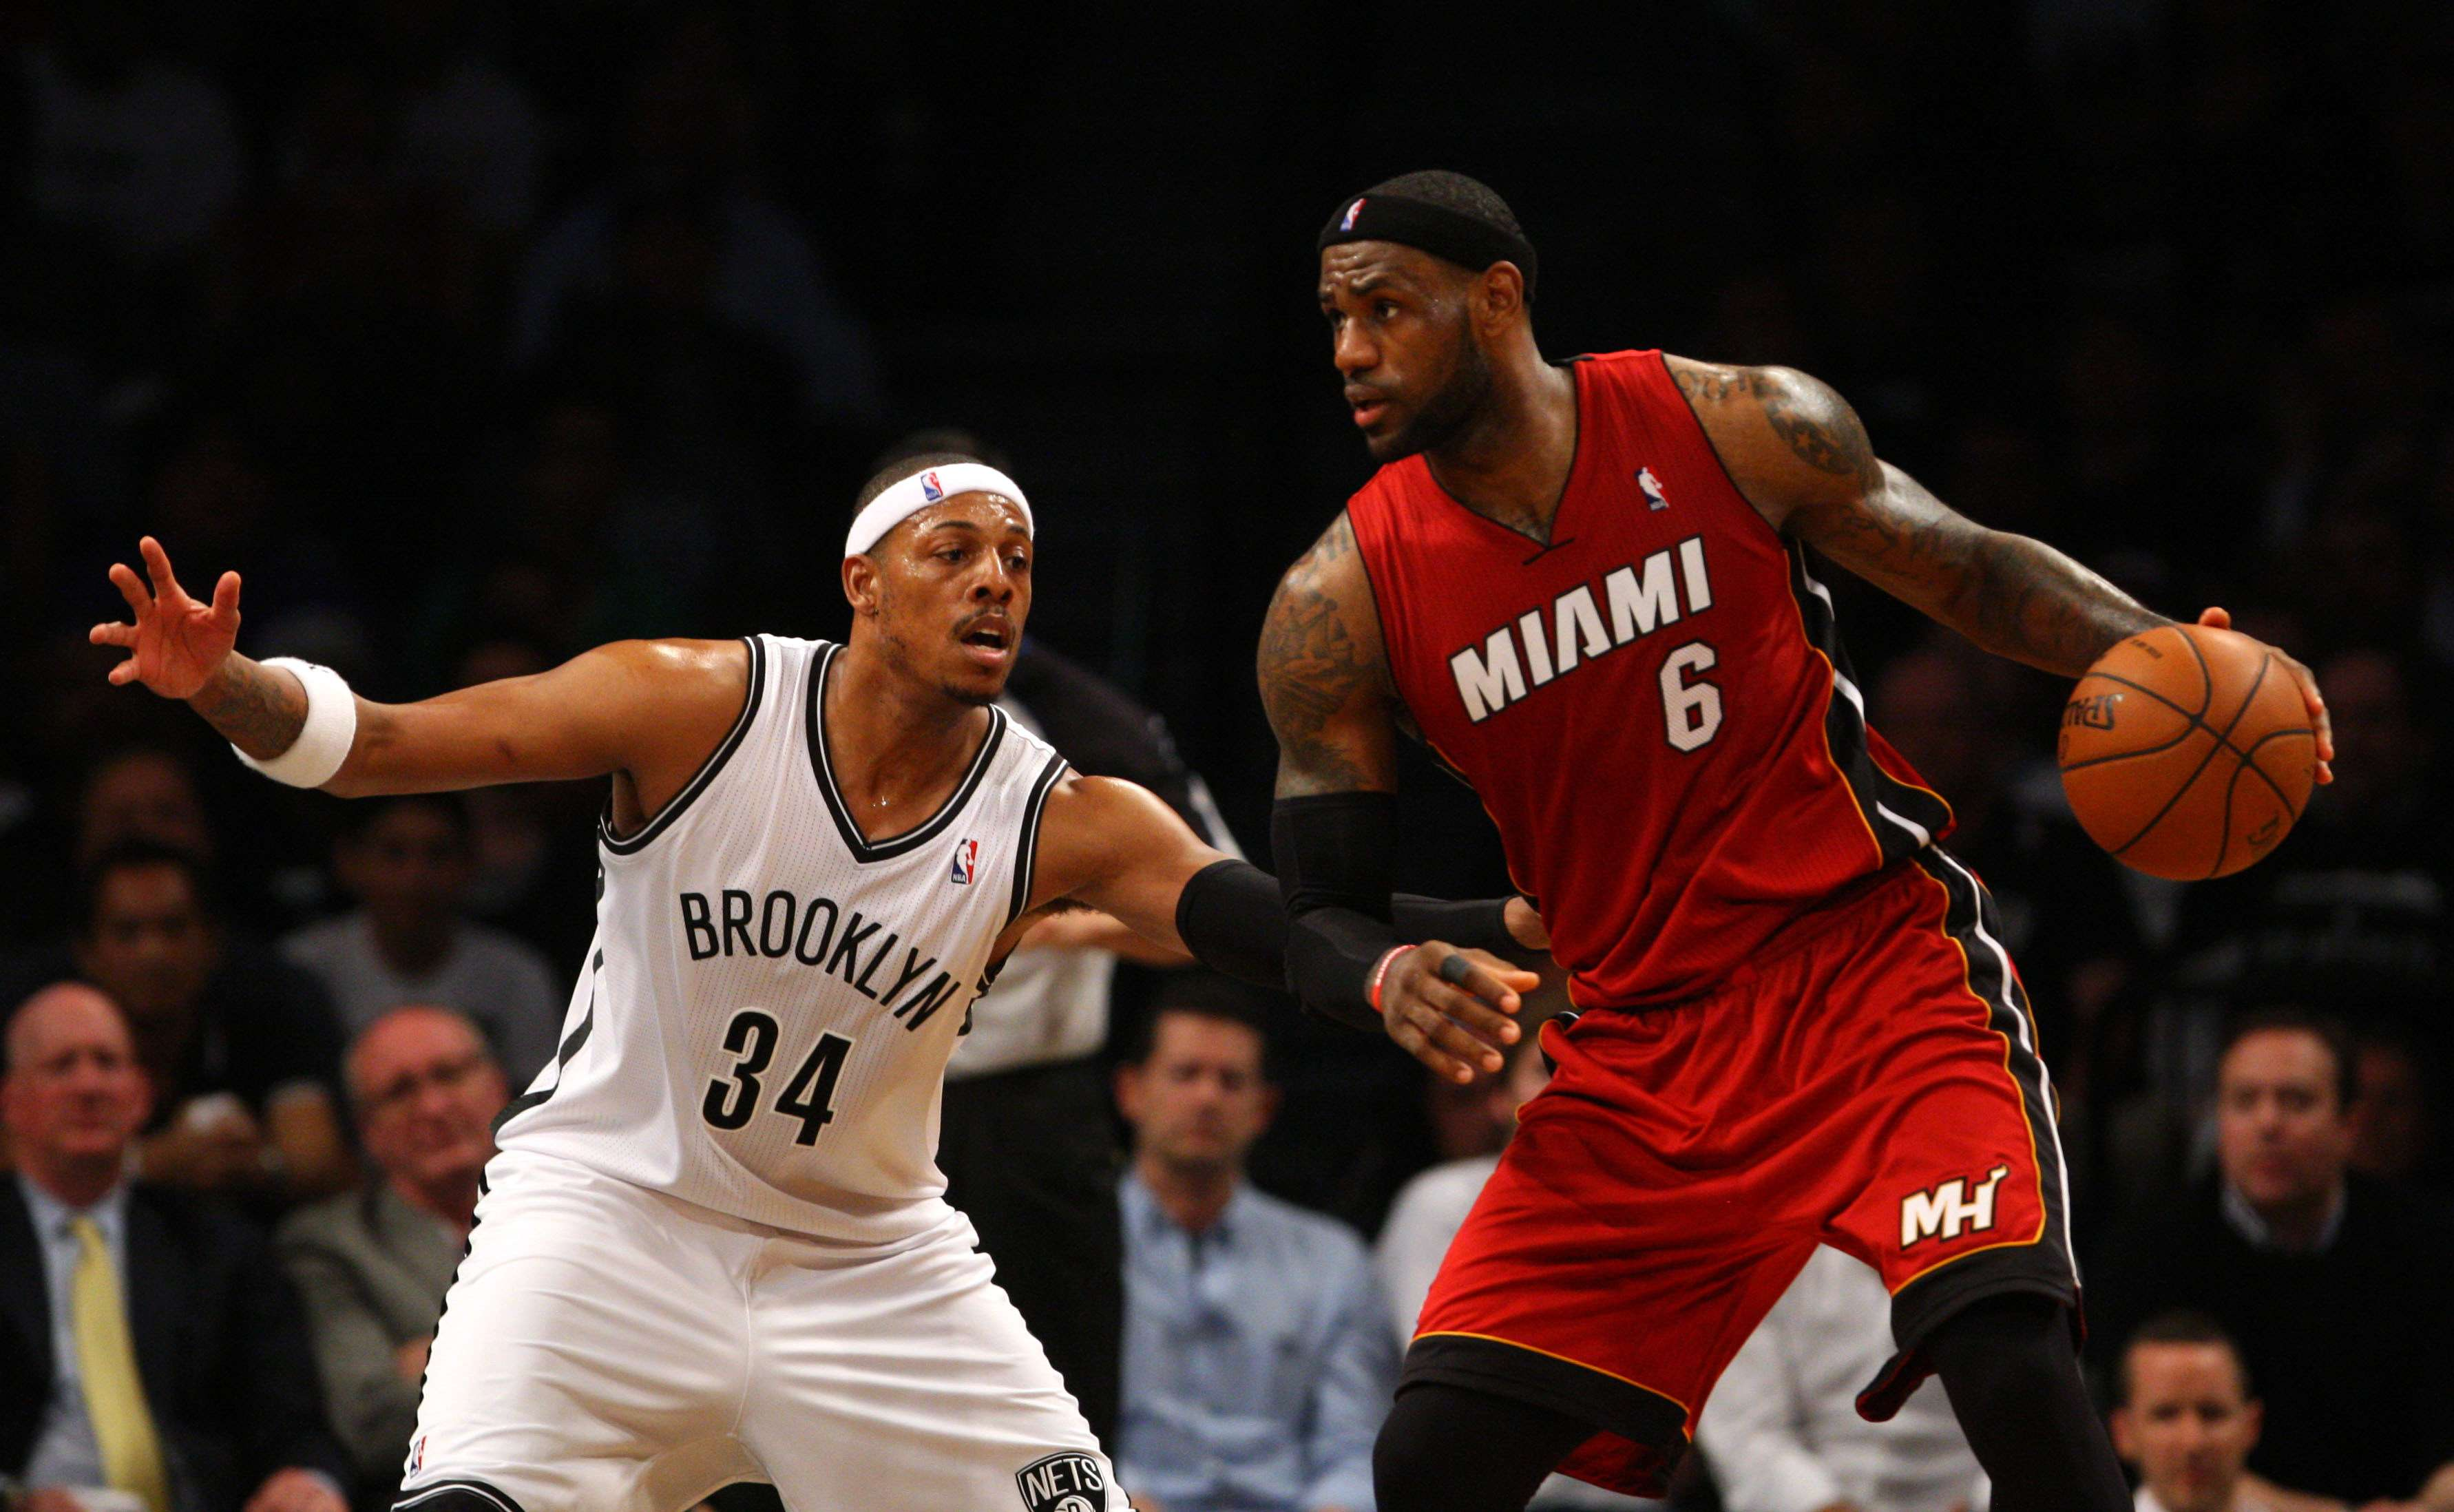 Paul Pierce assina contrato de 2 anos com Washington Wizards